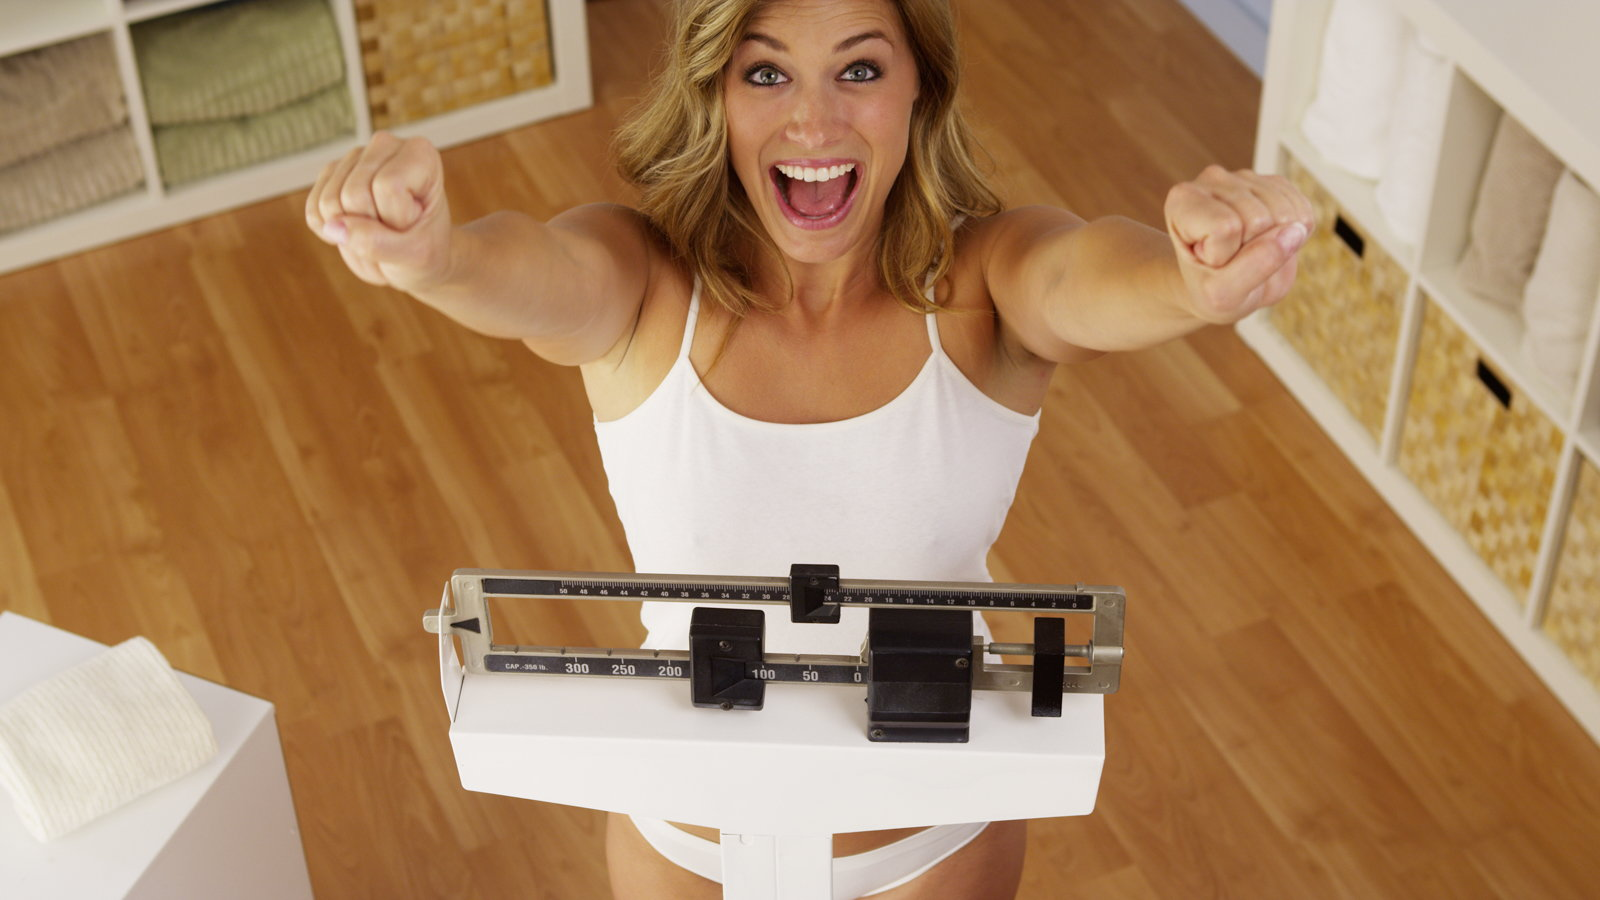 woman excited about weight loss